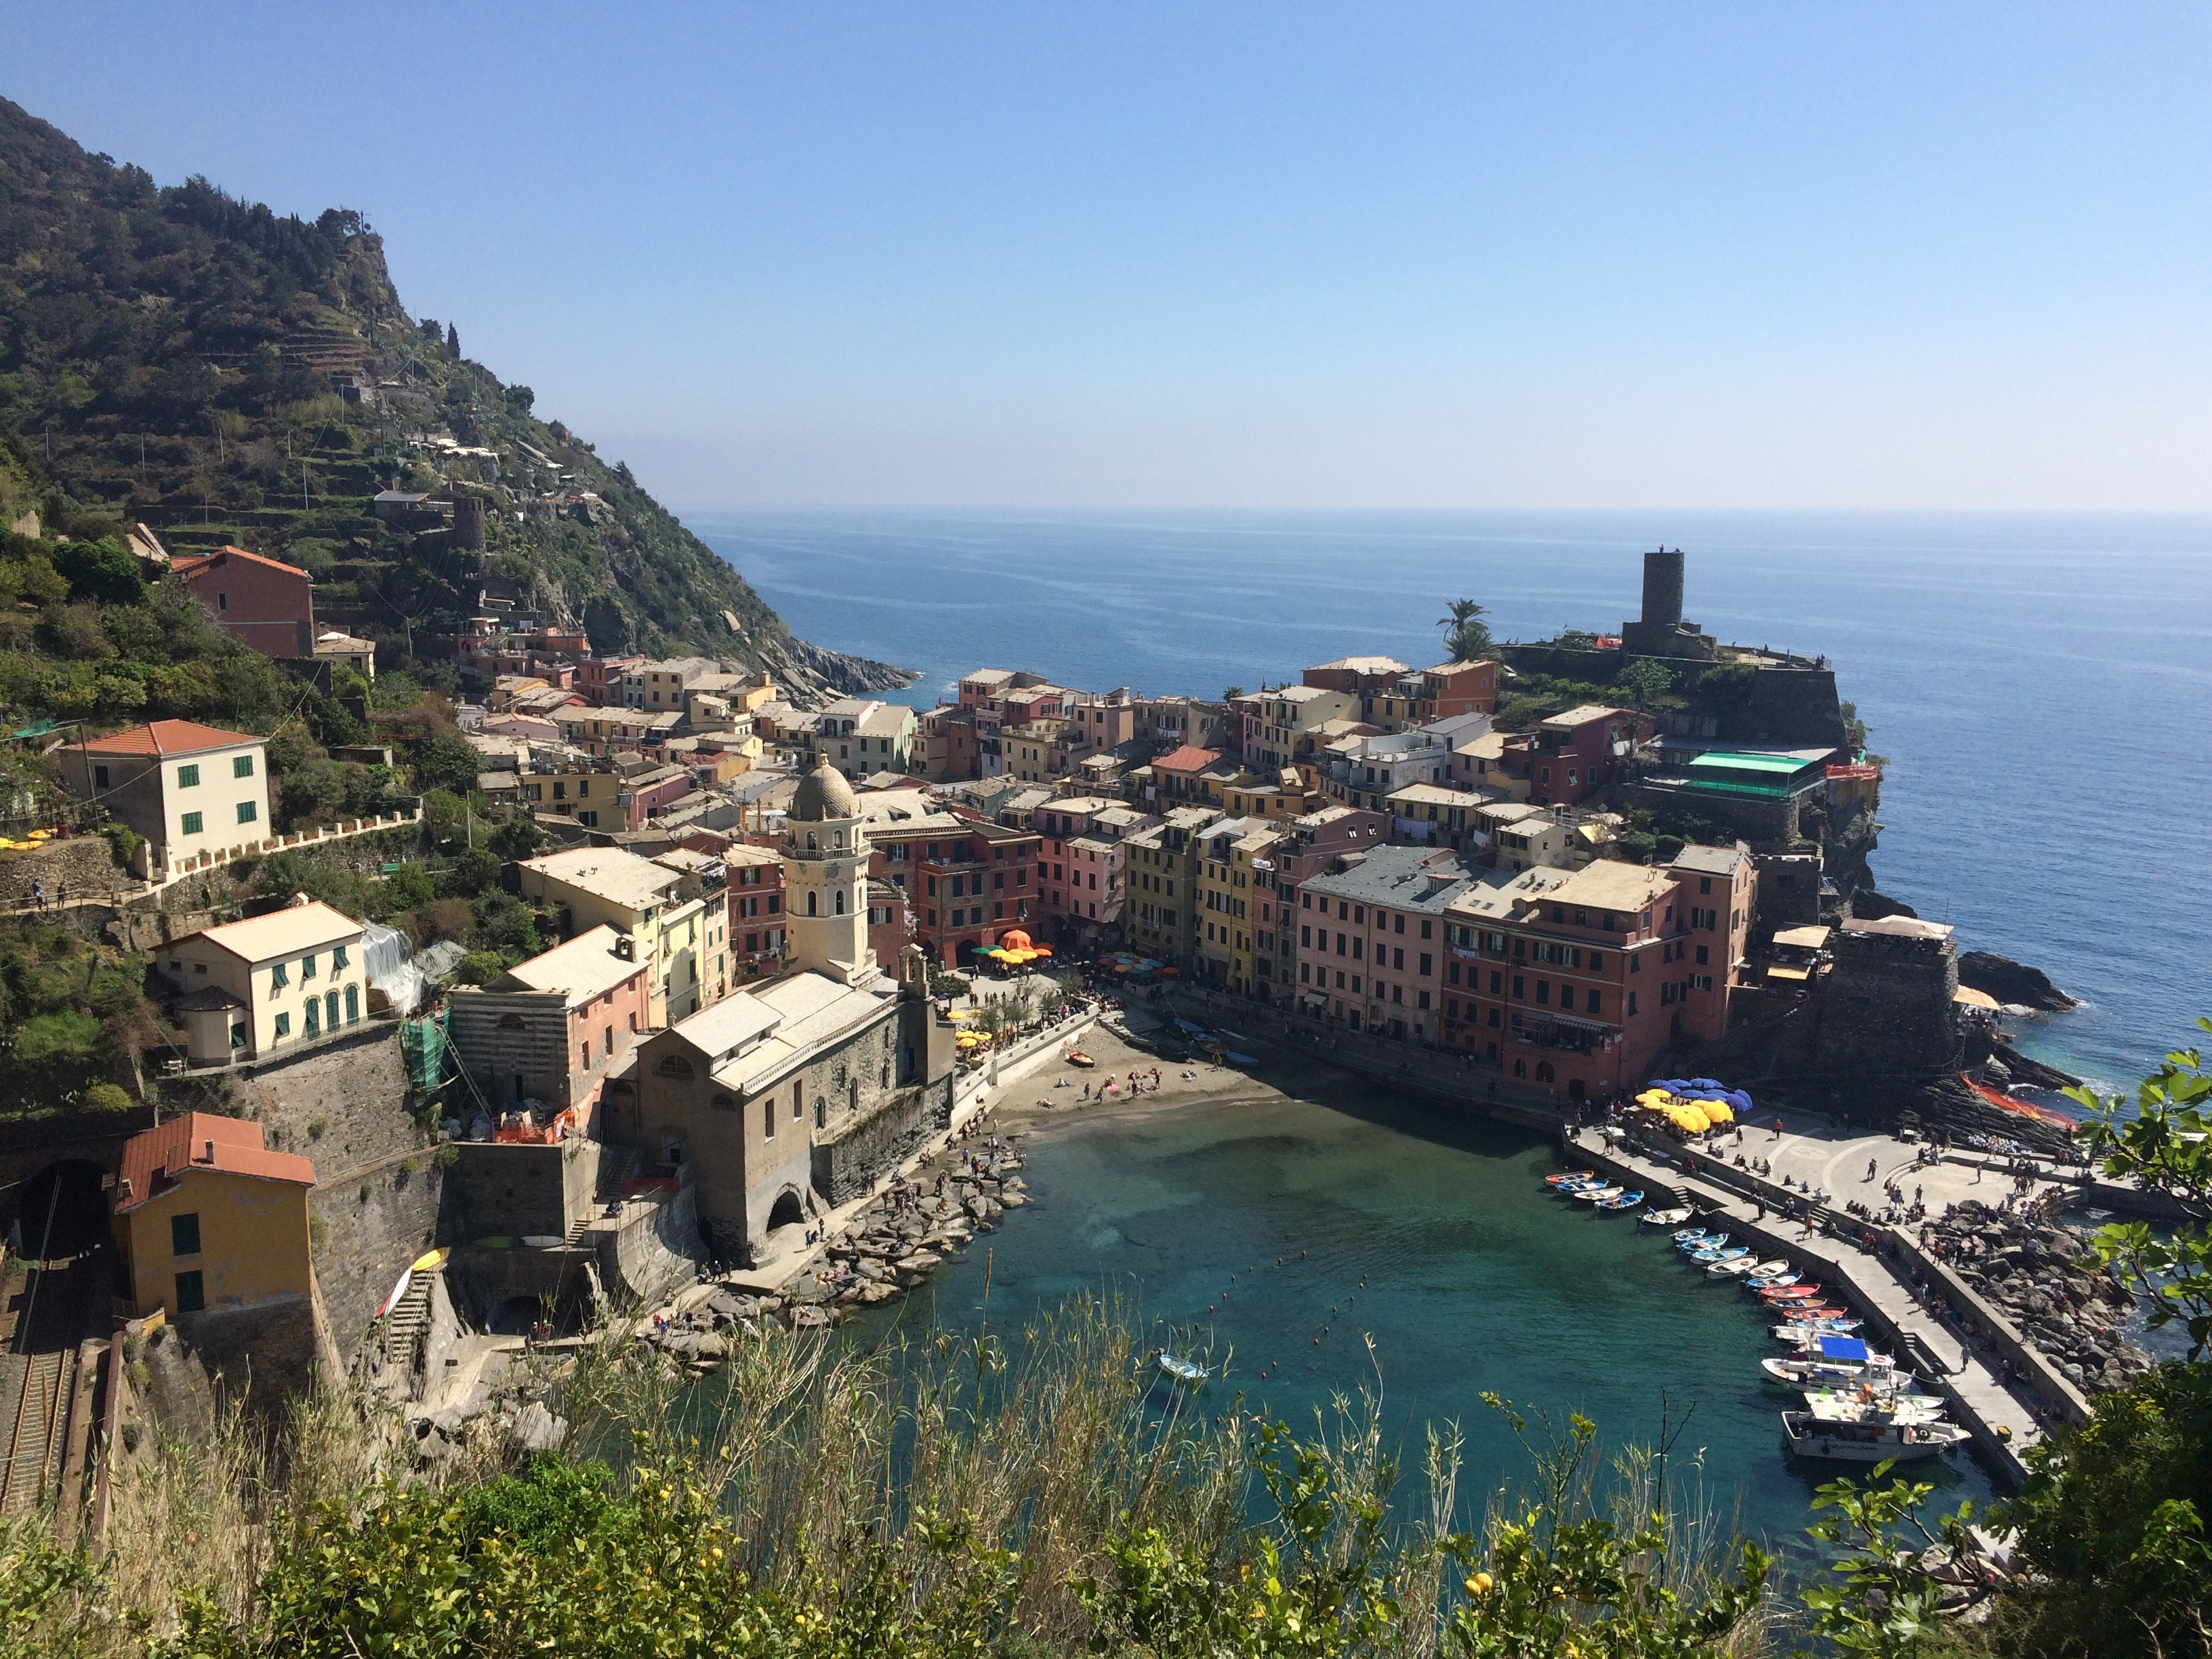 Cinque Terre - Vernazza viewed from the path to Monterosso